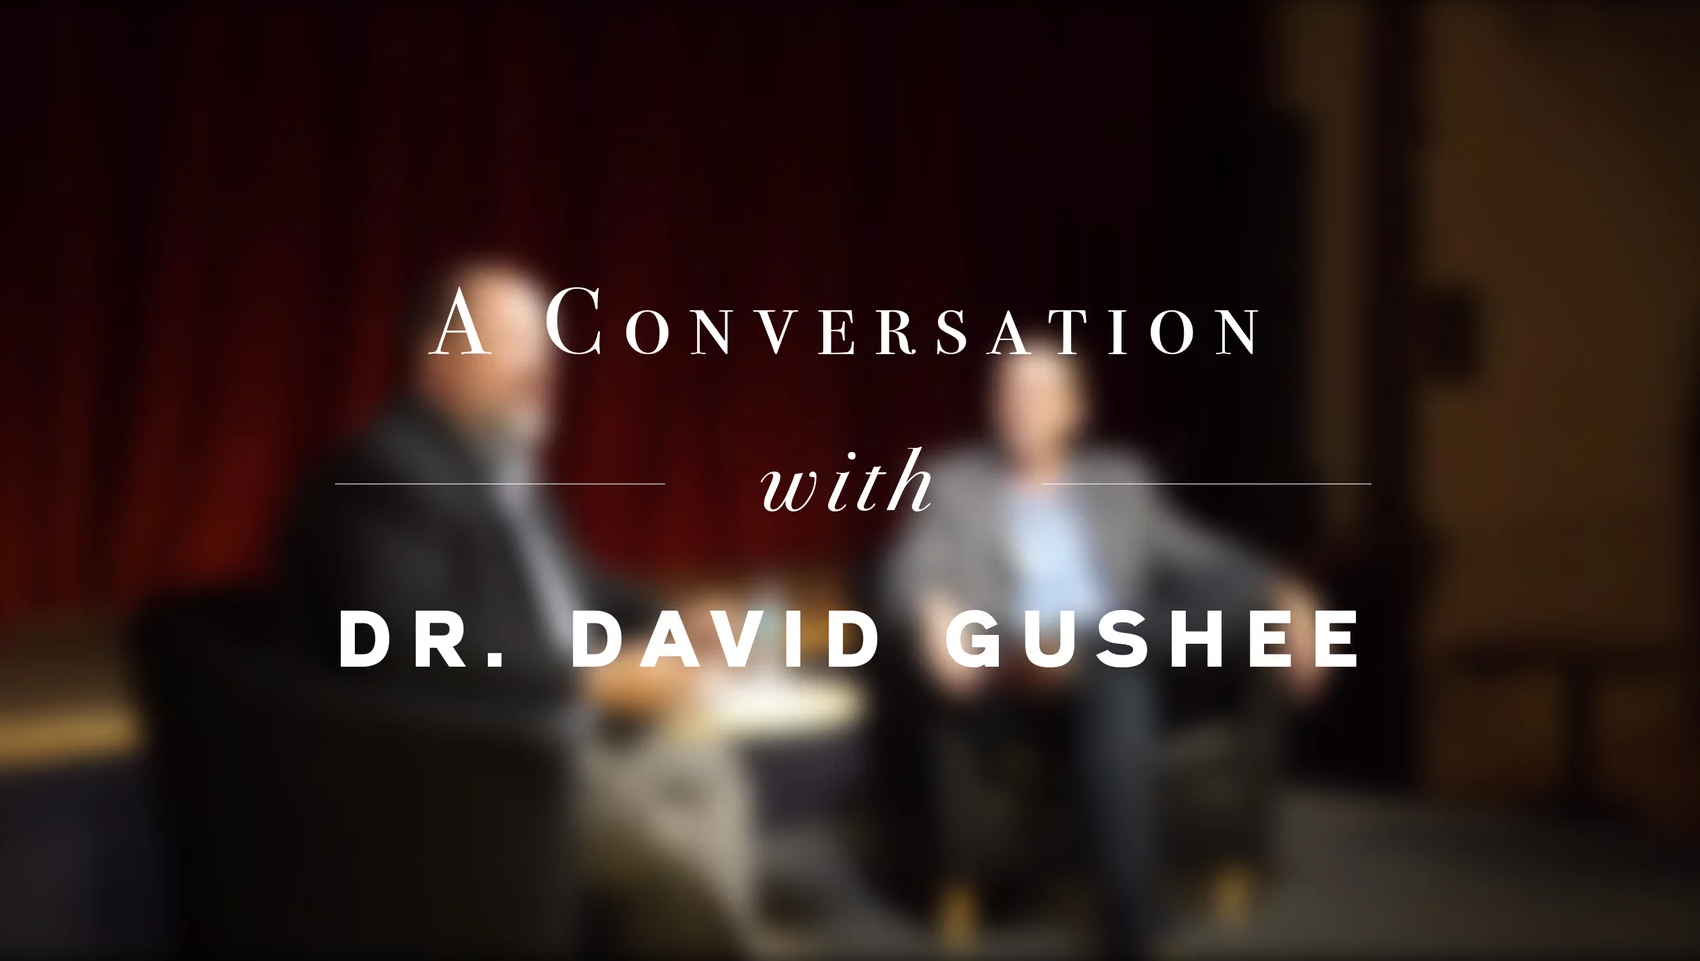 A Conversation with David Gushee